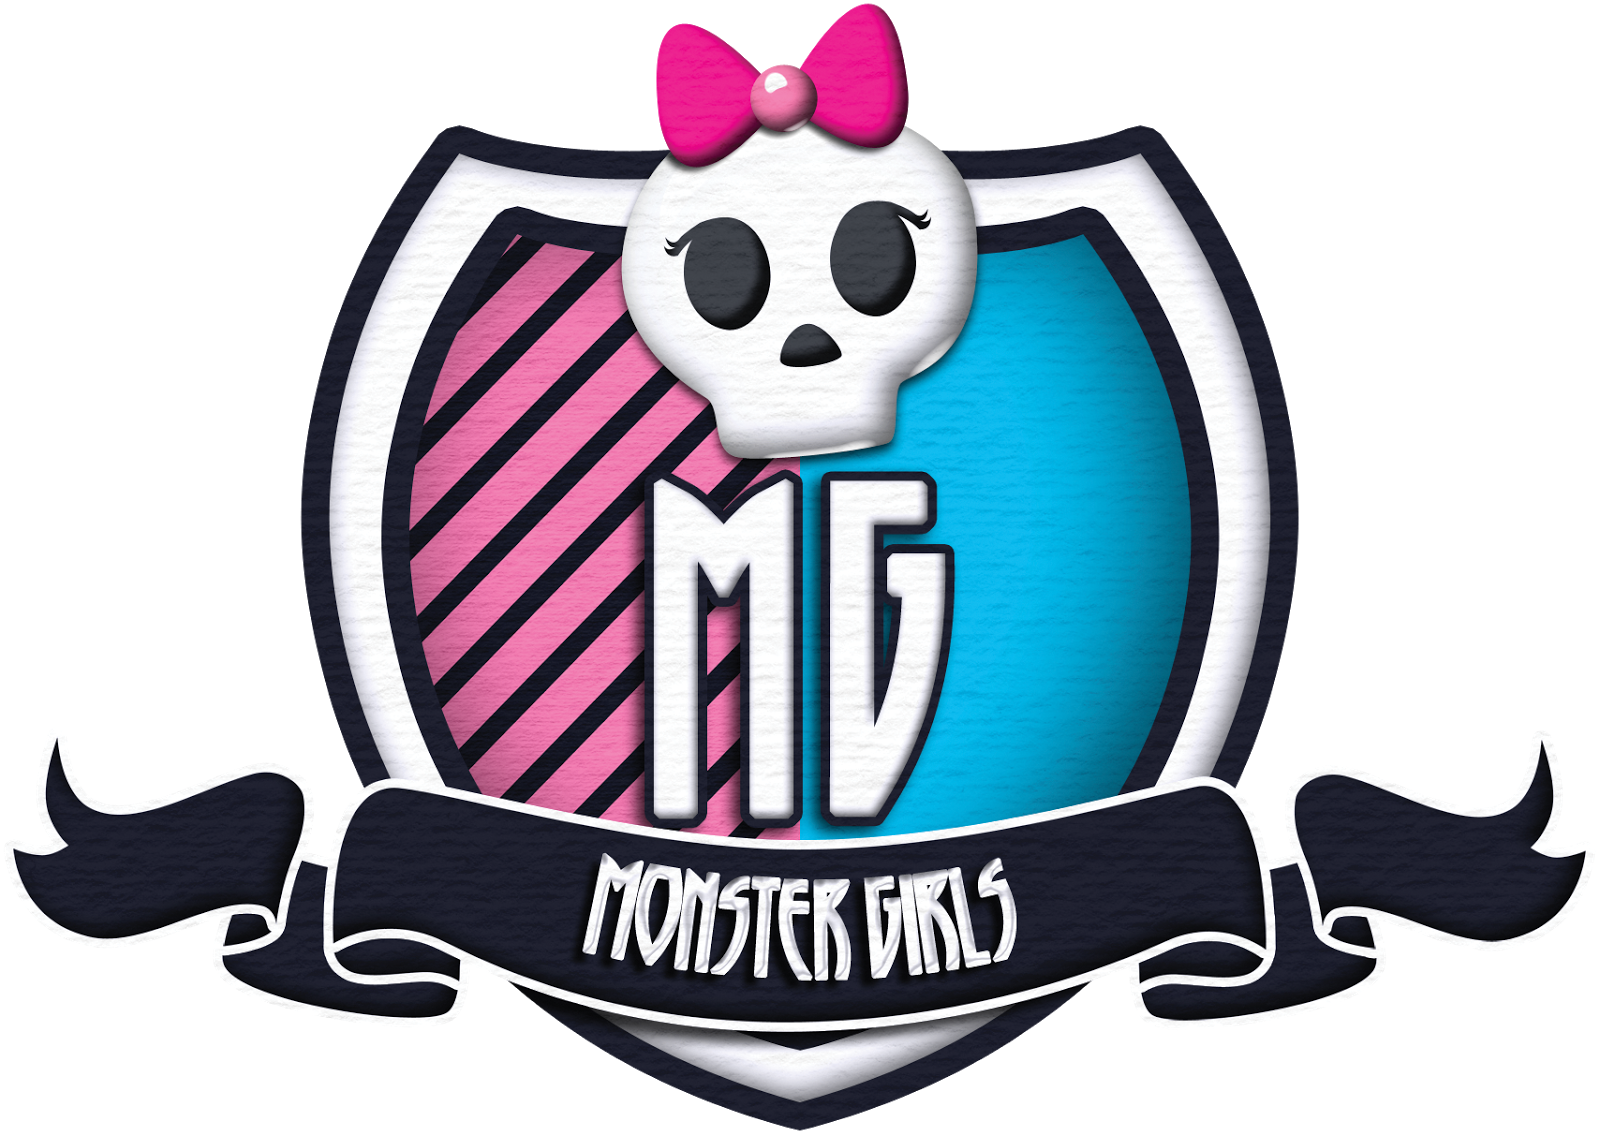 Monster High Clip Art: Backgrounds and Borders.